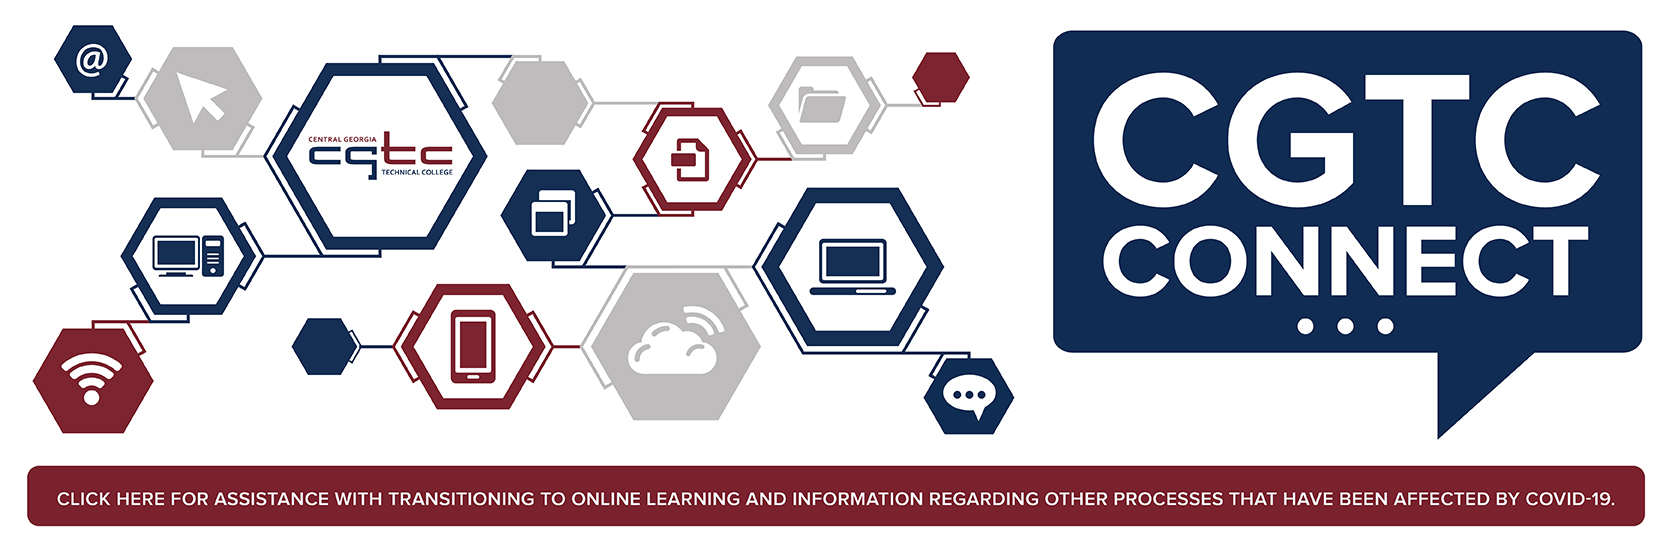 CLICK HERE FOR ASSISTANCE WITH TRANSITIONING TO ONLINE LEARNING and information regarding other processes that have been affected by COVID-19.